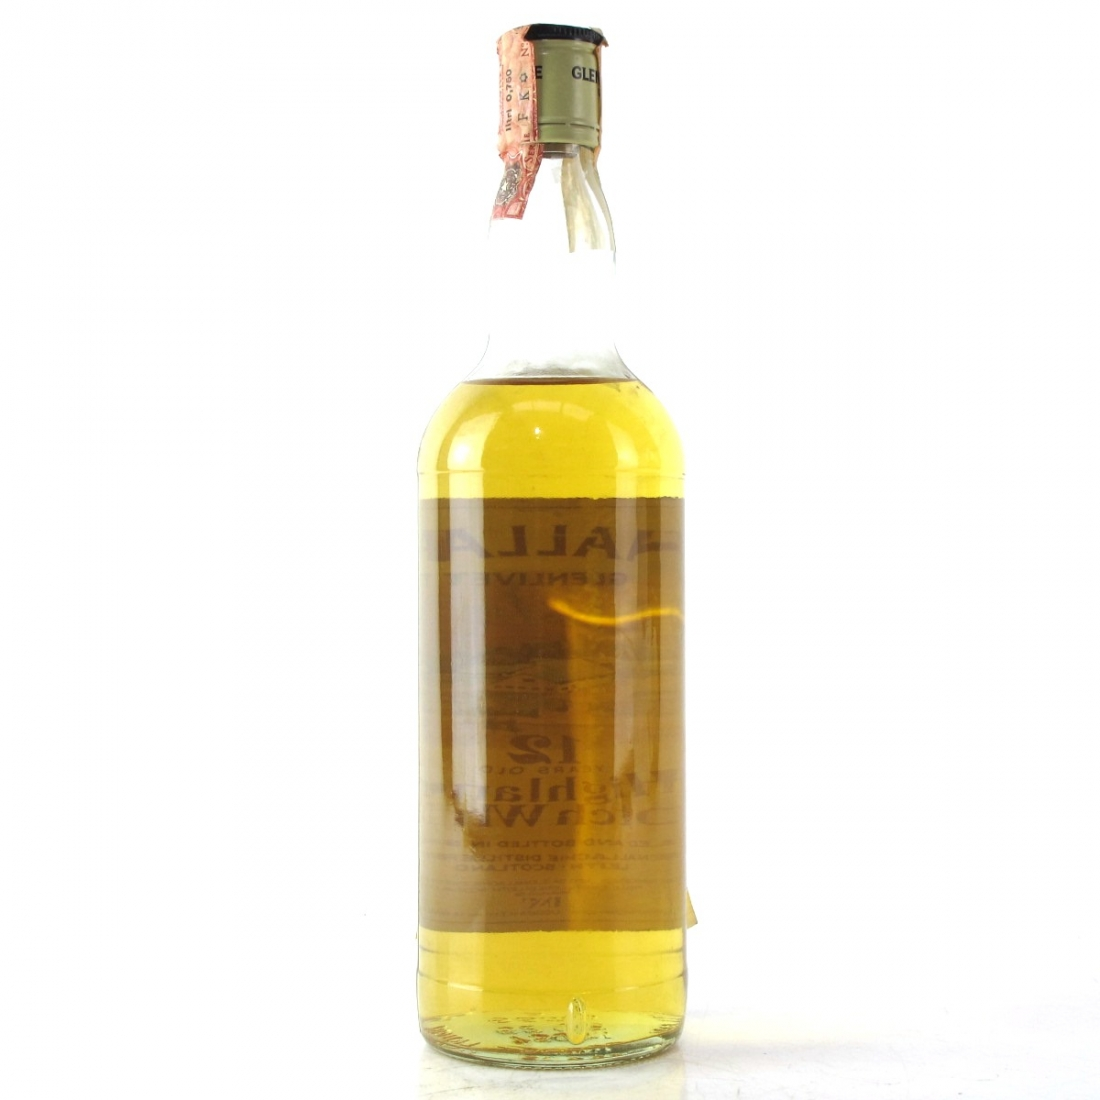 Glenallachie 1969 12 Year Old